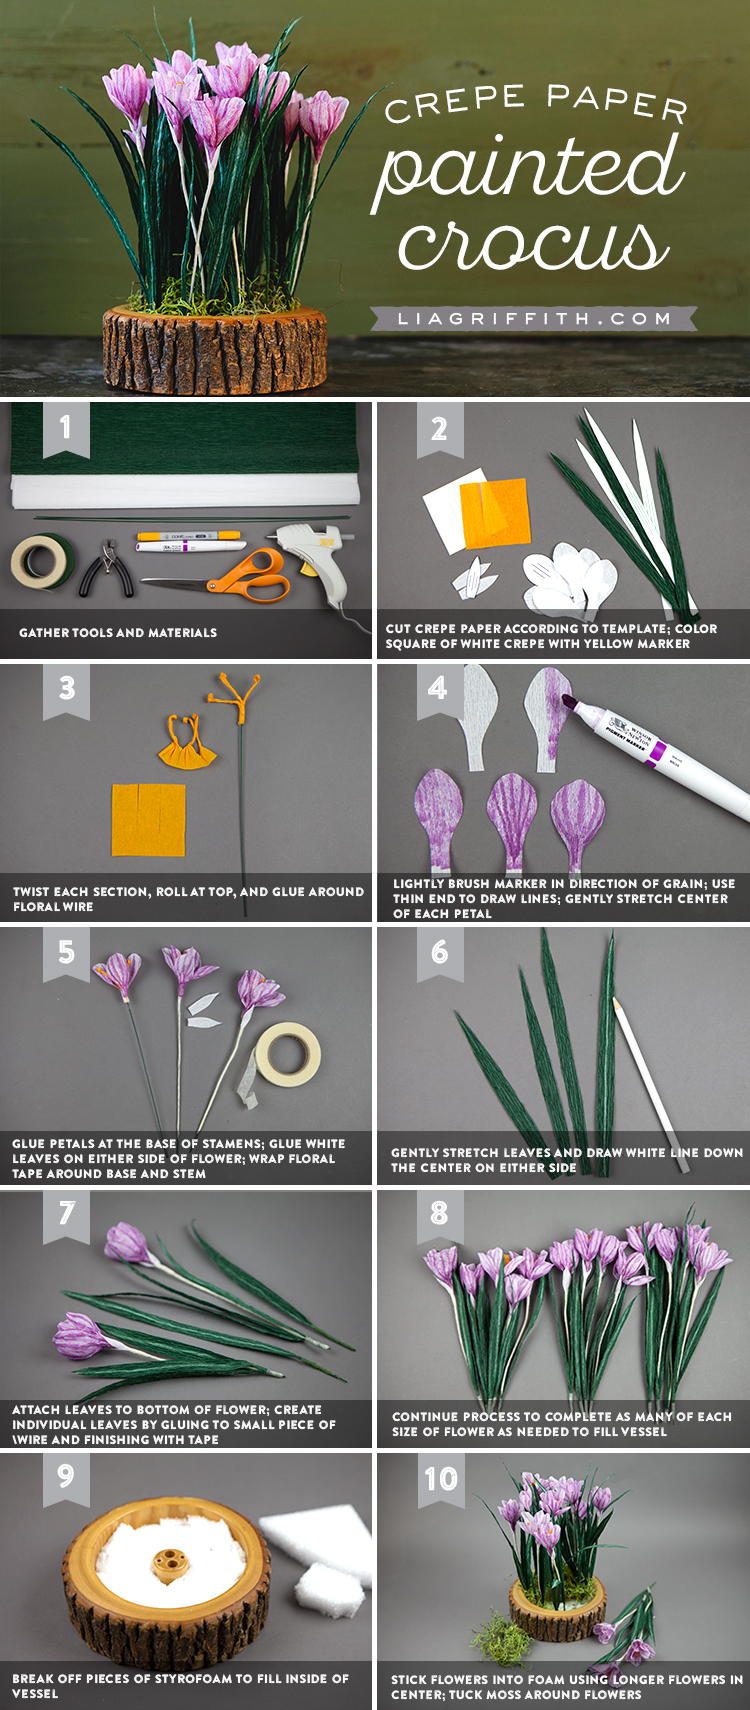 Paper Crocus Tutorial